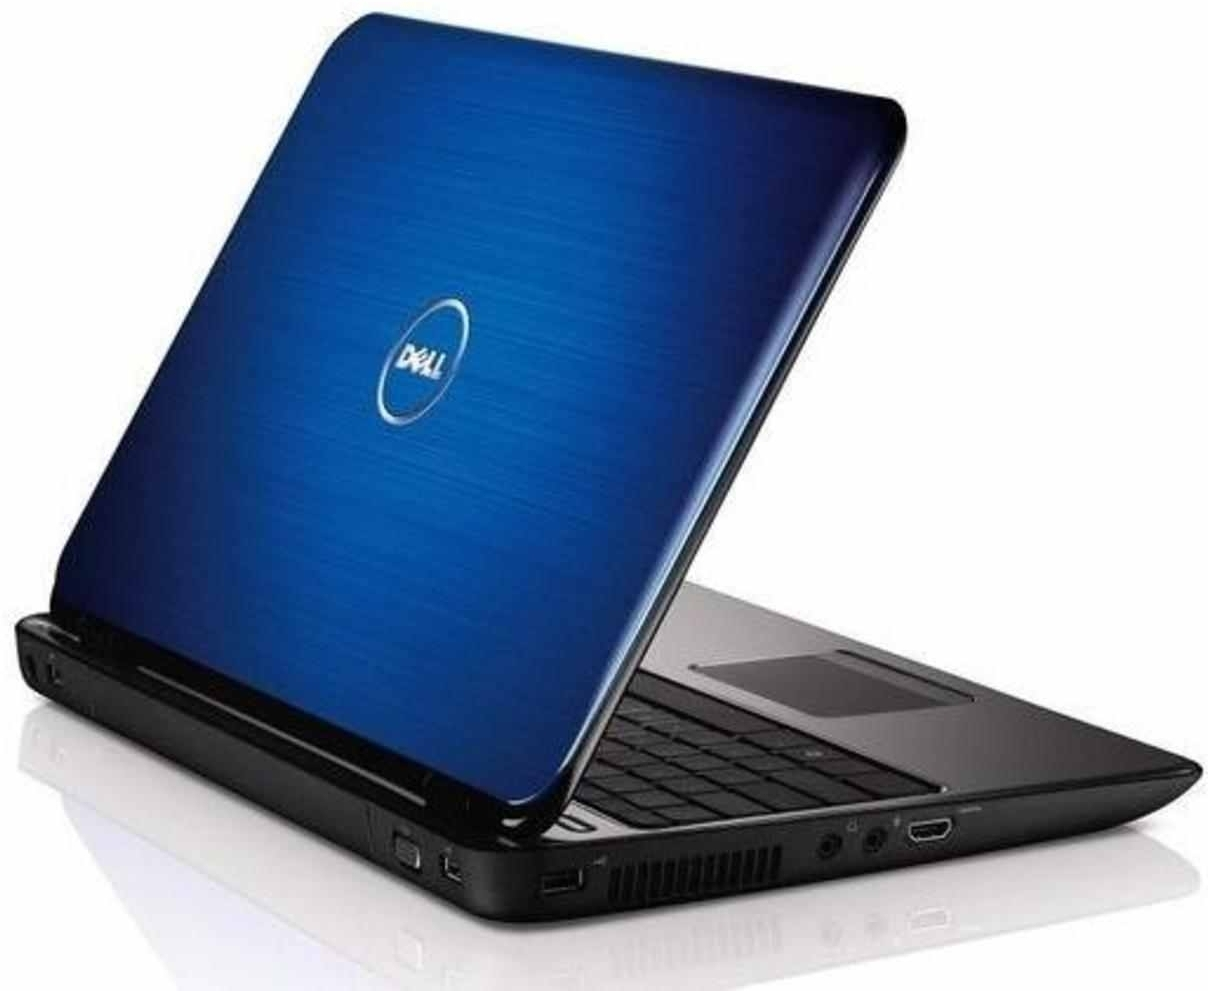 Dell Core i3 2nd Gen - (Windows 7 Home Basic) DD2GN08(Black With Blue Color Panel)